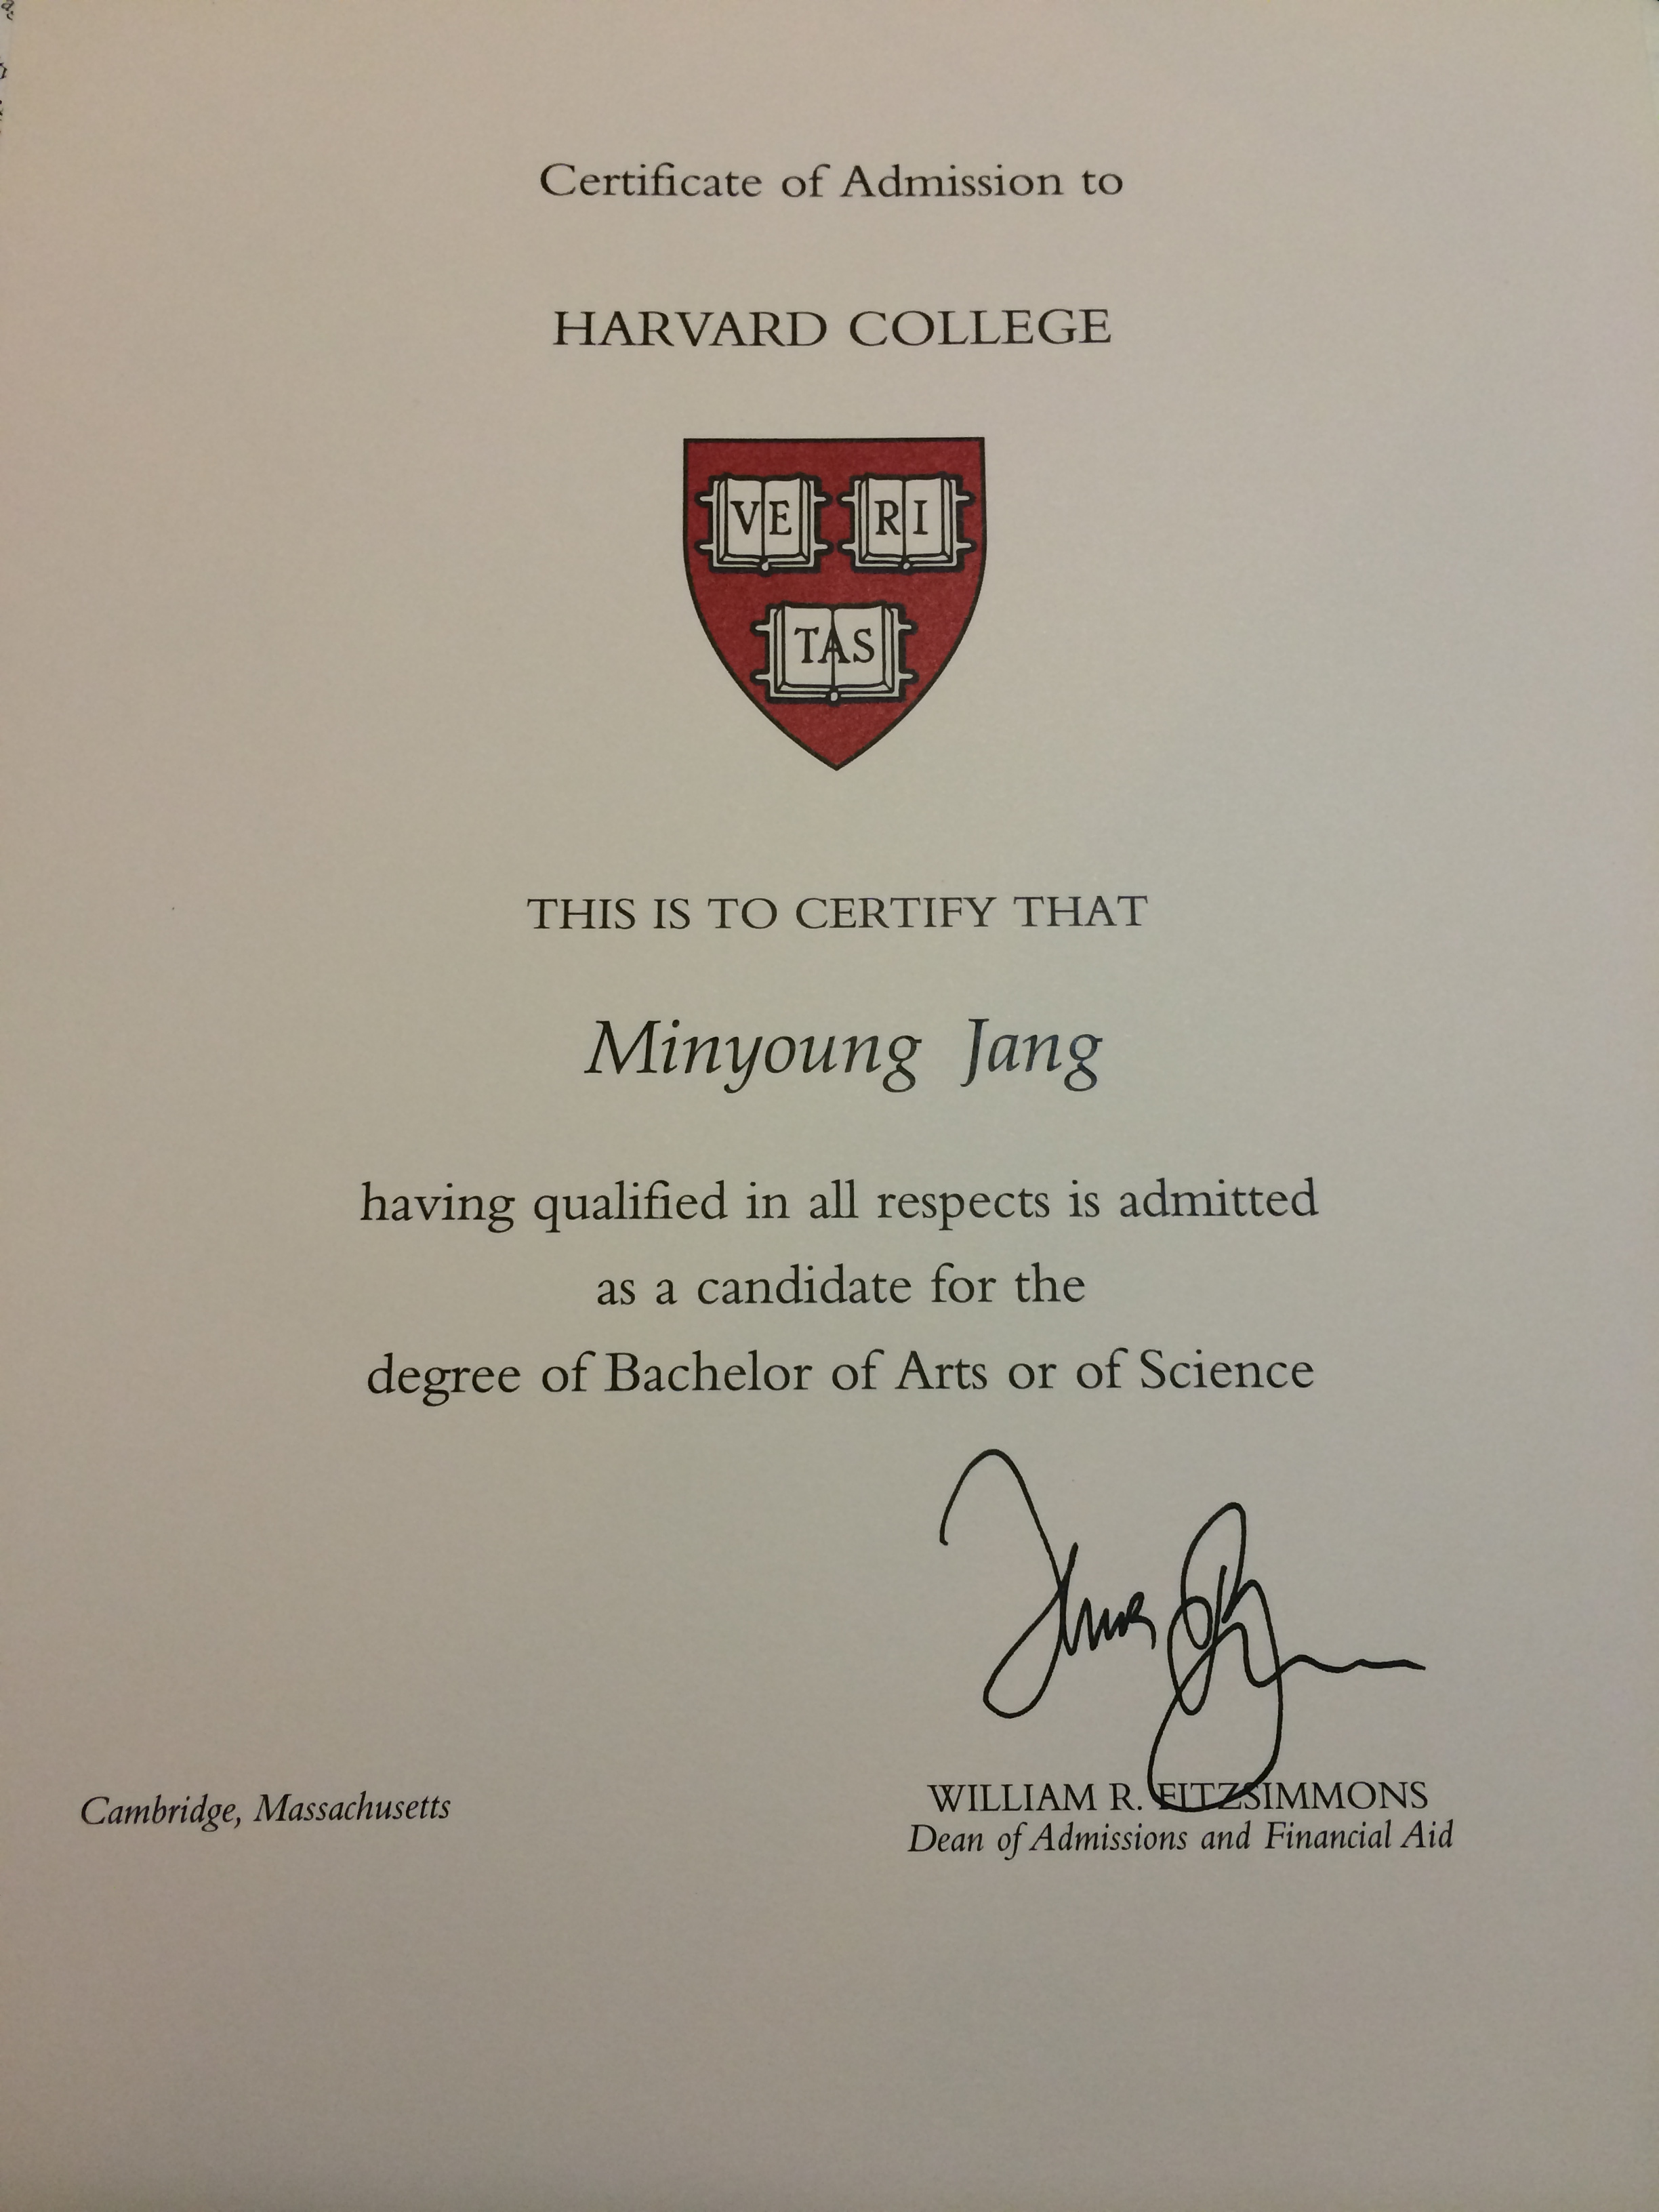 harvard extension thesis There is an exception to the official harvard extension school r sum guidelines: people who have completed the alm in management now if you are pursuing a professional degree that does not require a thesis facilitated by a harvard faculty member.